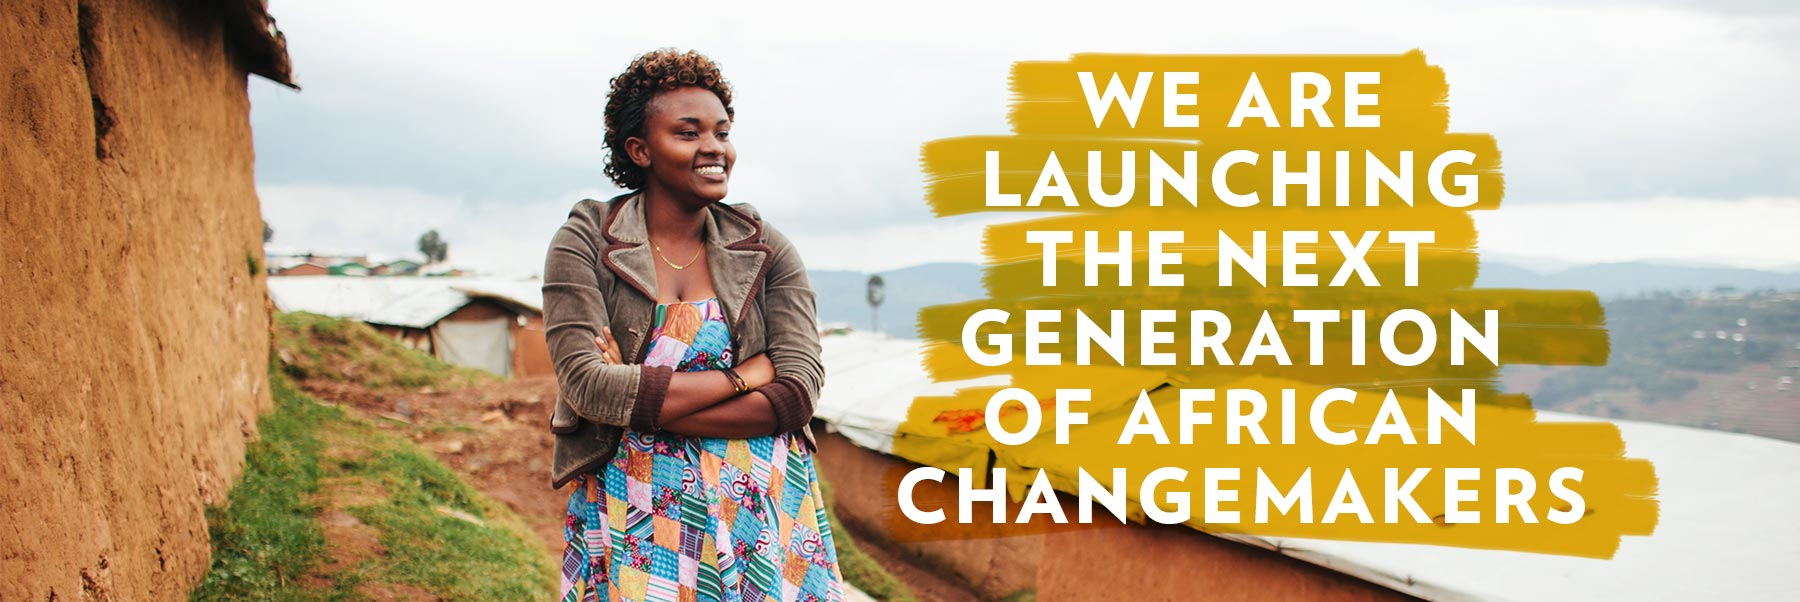 LAUNCHING THE NEXT GENERATION 